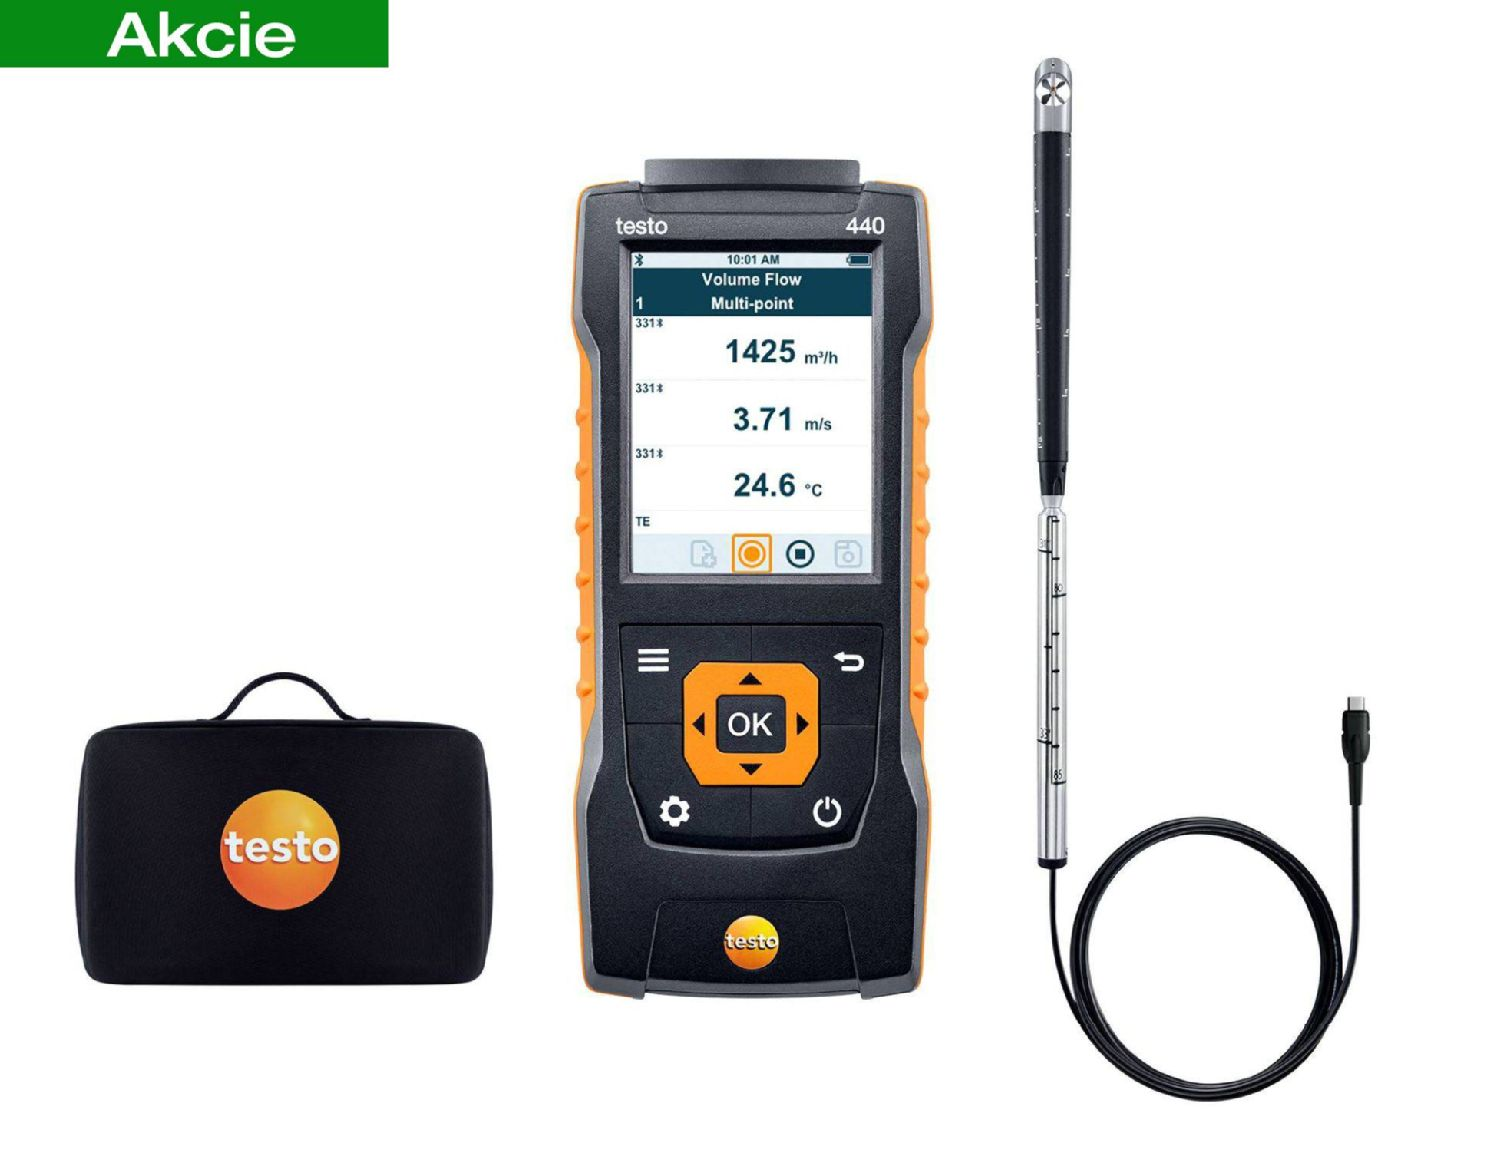 testo 440 16 mm Vane Kit